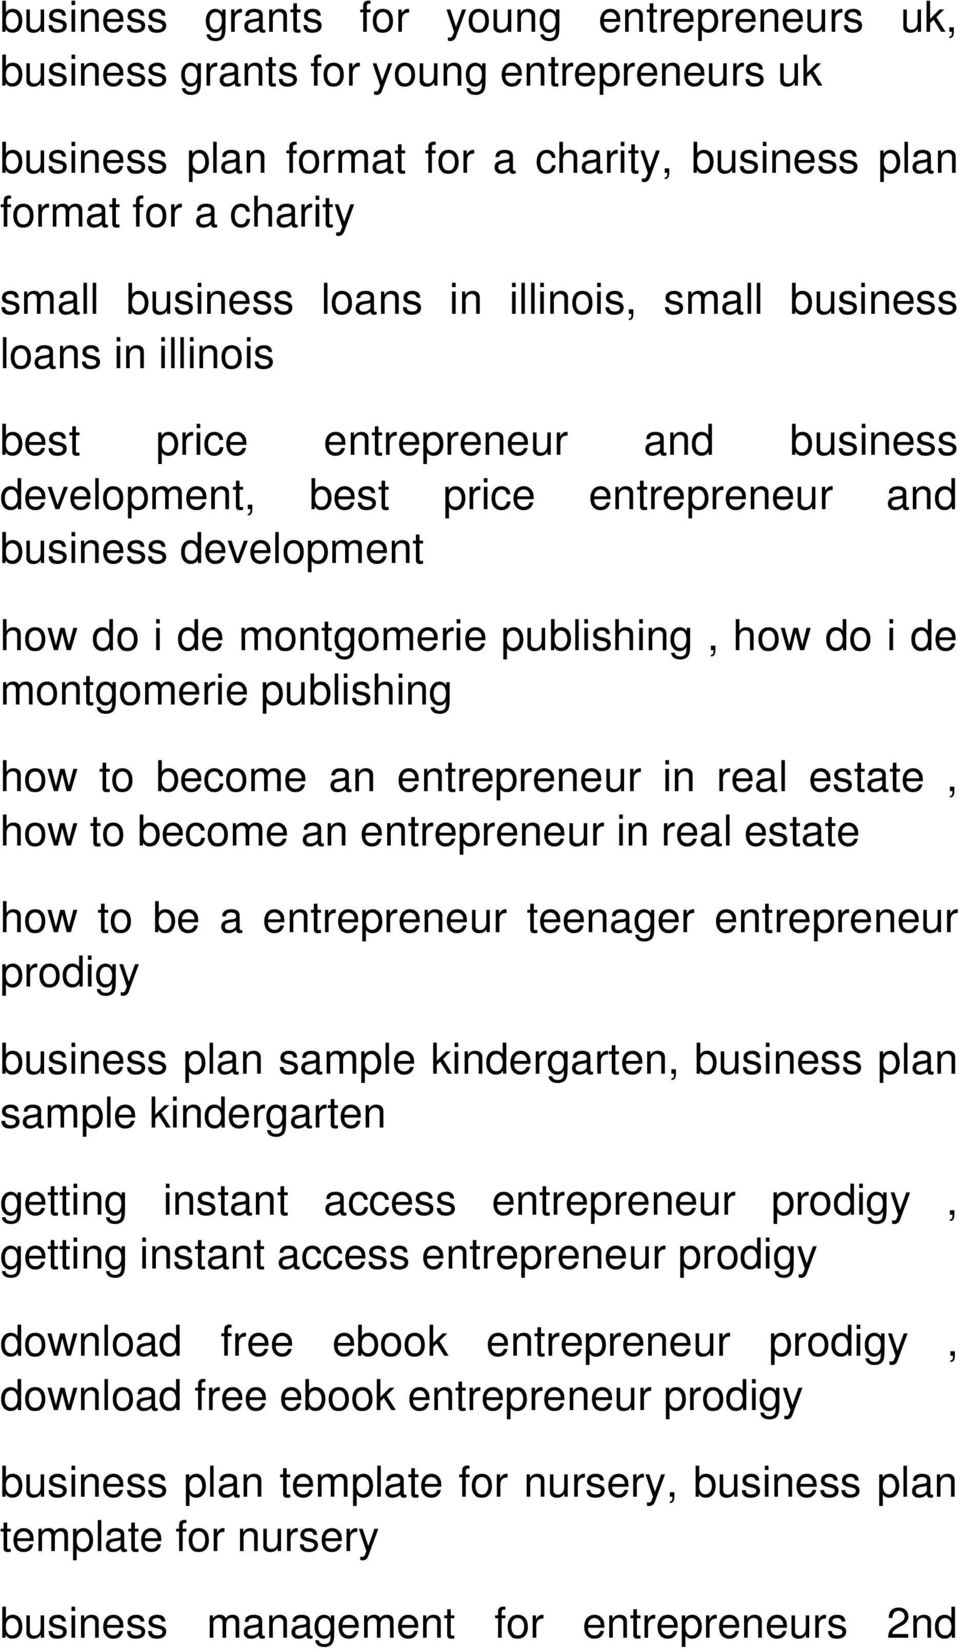 A successful entrepreneur in india business plan template